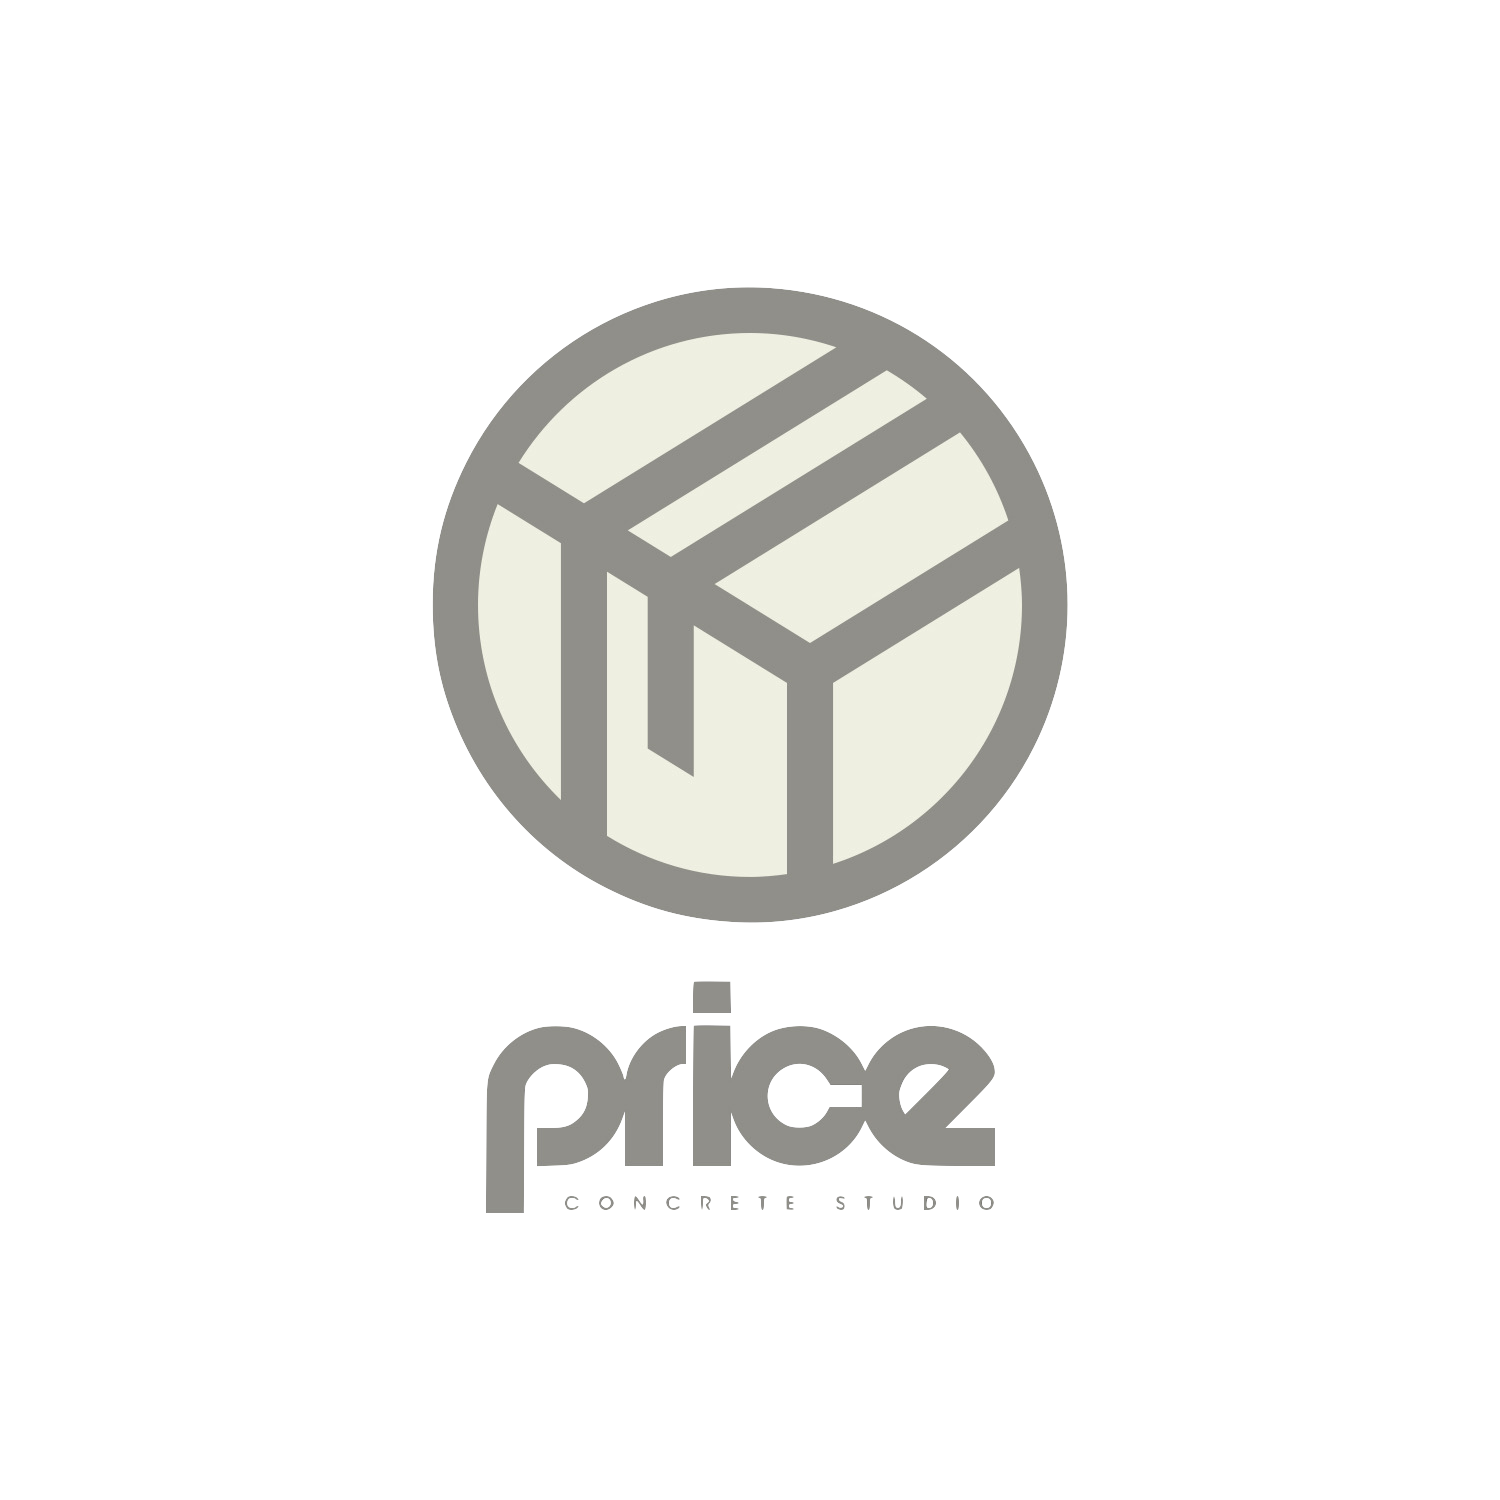 Price Concrete Studio